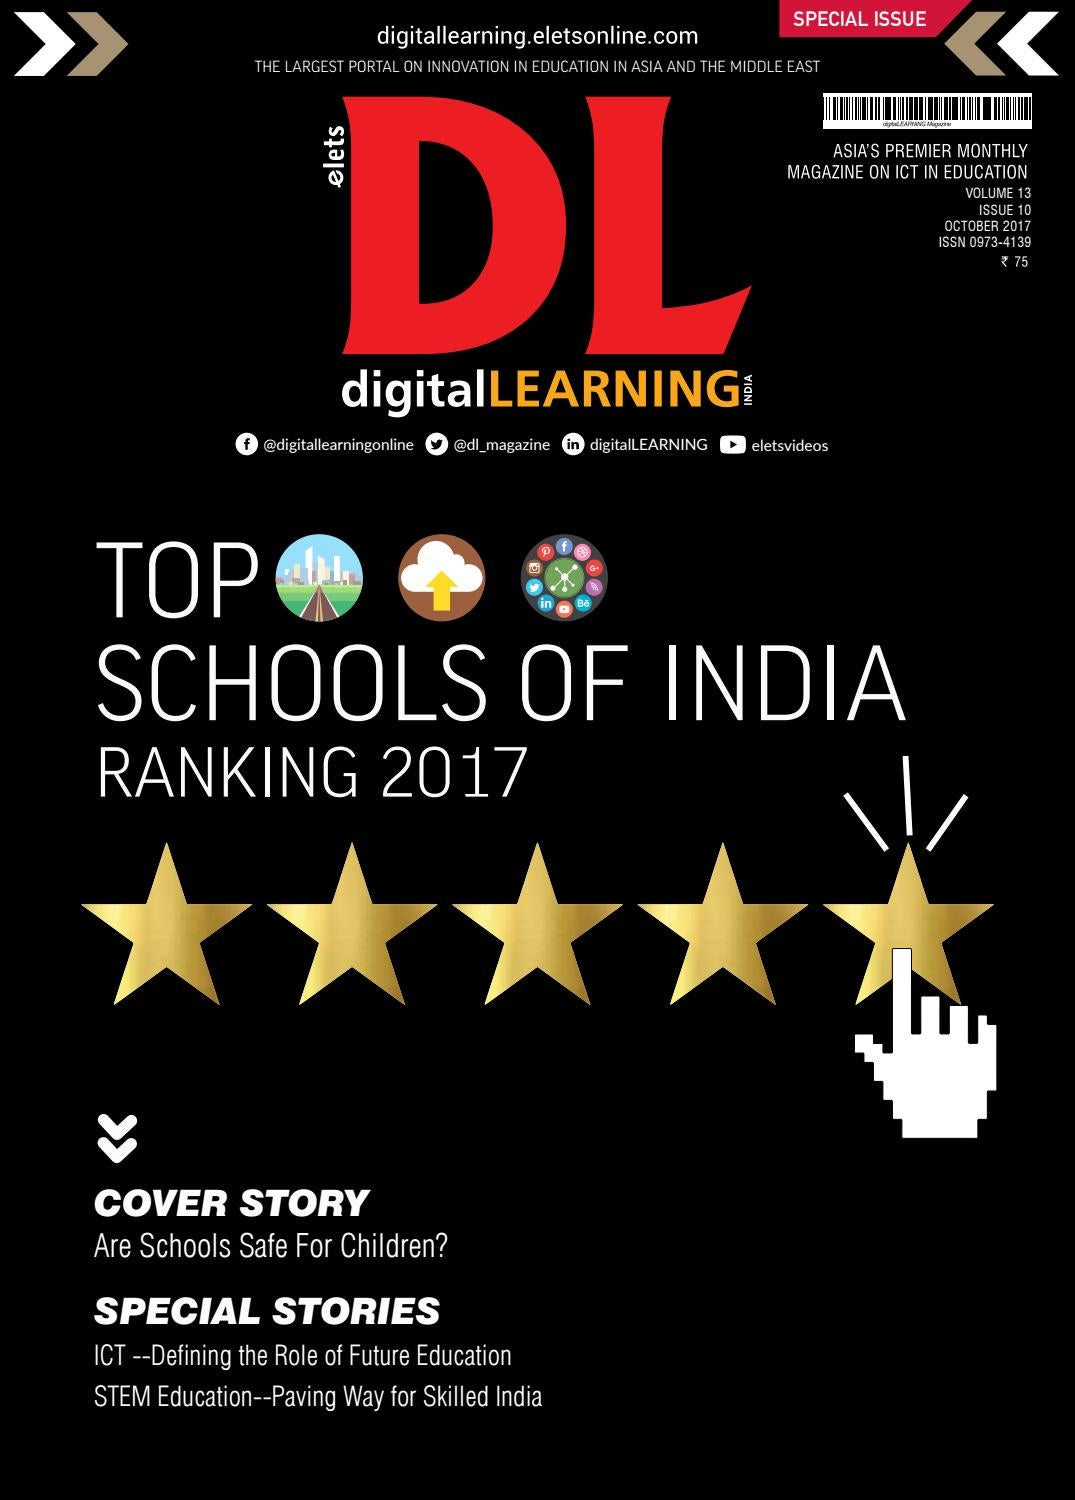 digitalLEARNING Magazine - October 2017 :: Special Issue by digital